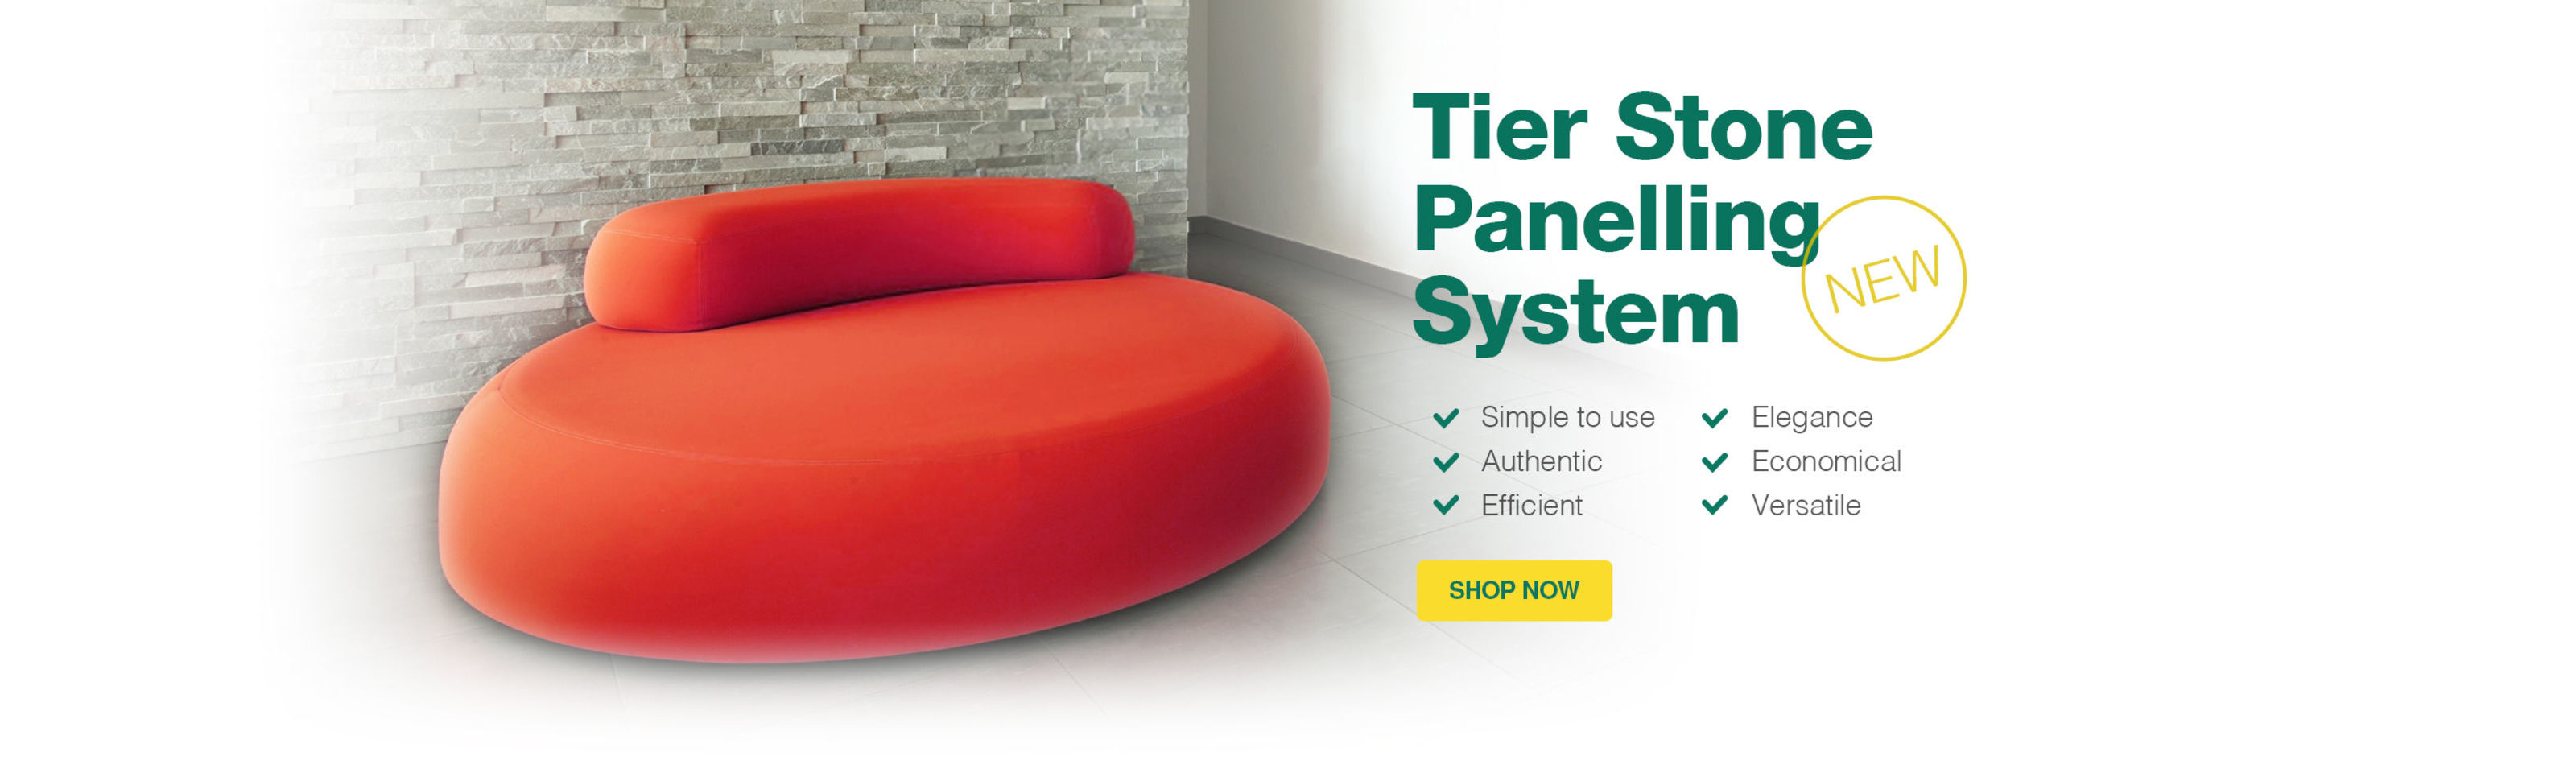 Tier Stone Panelling System